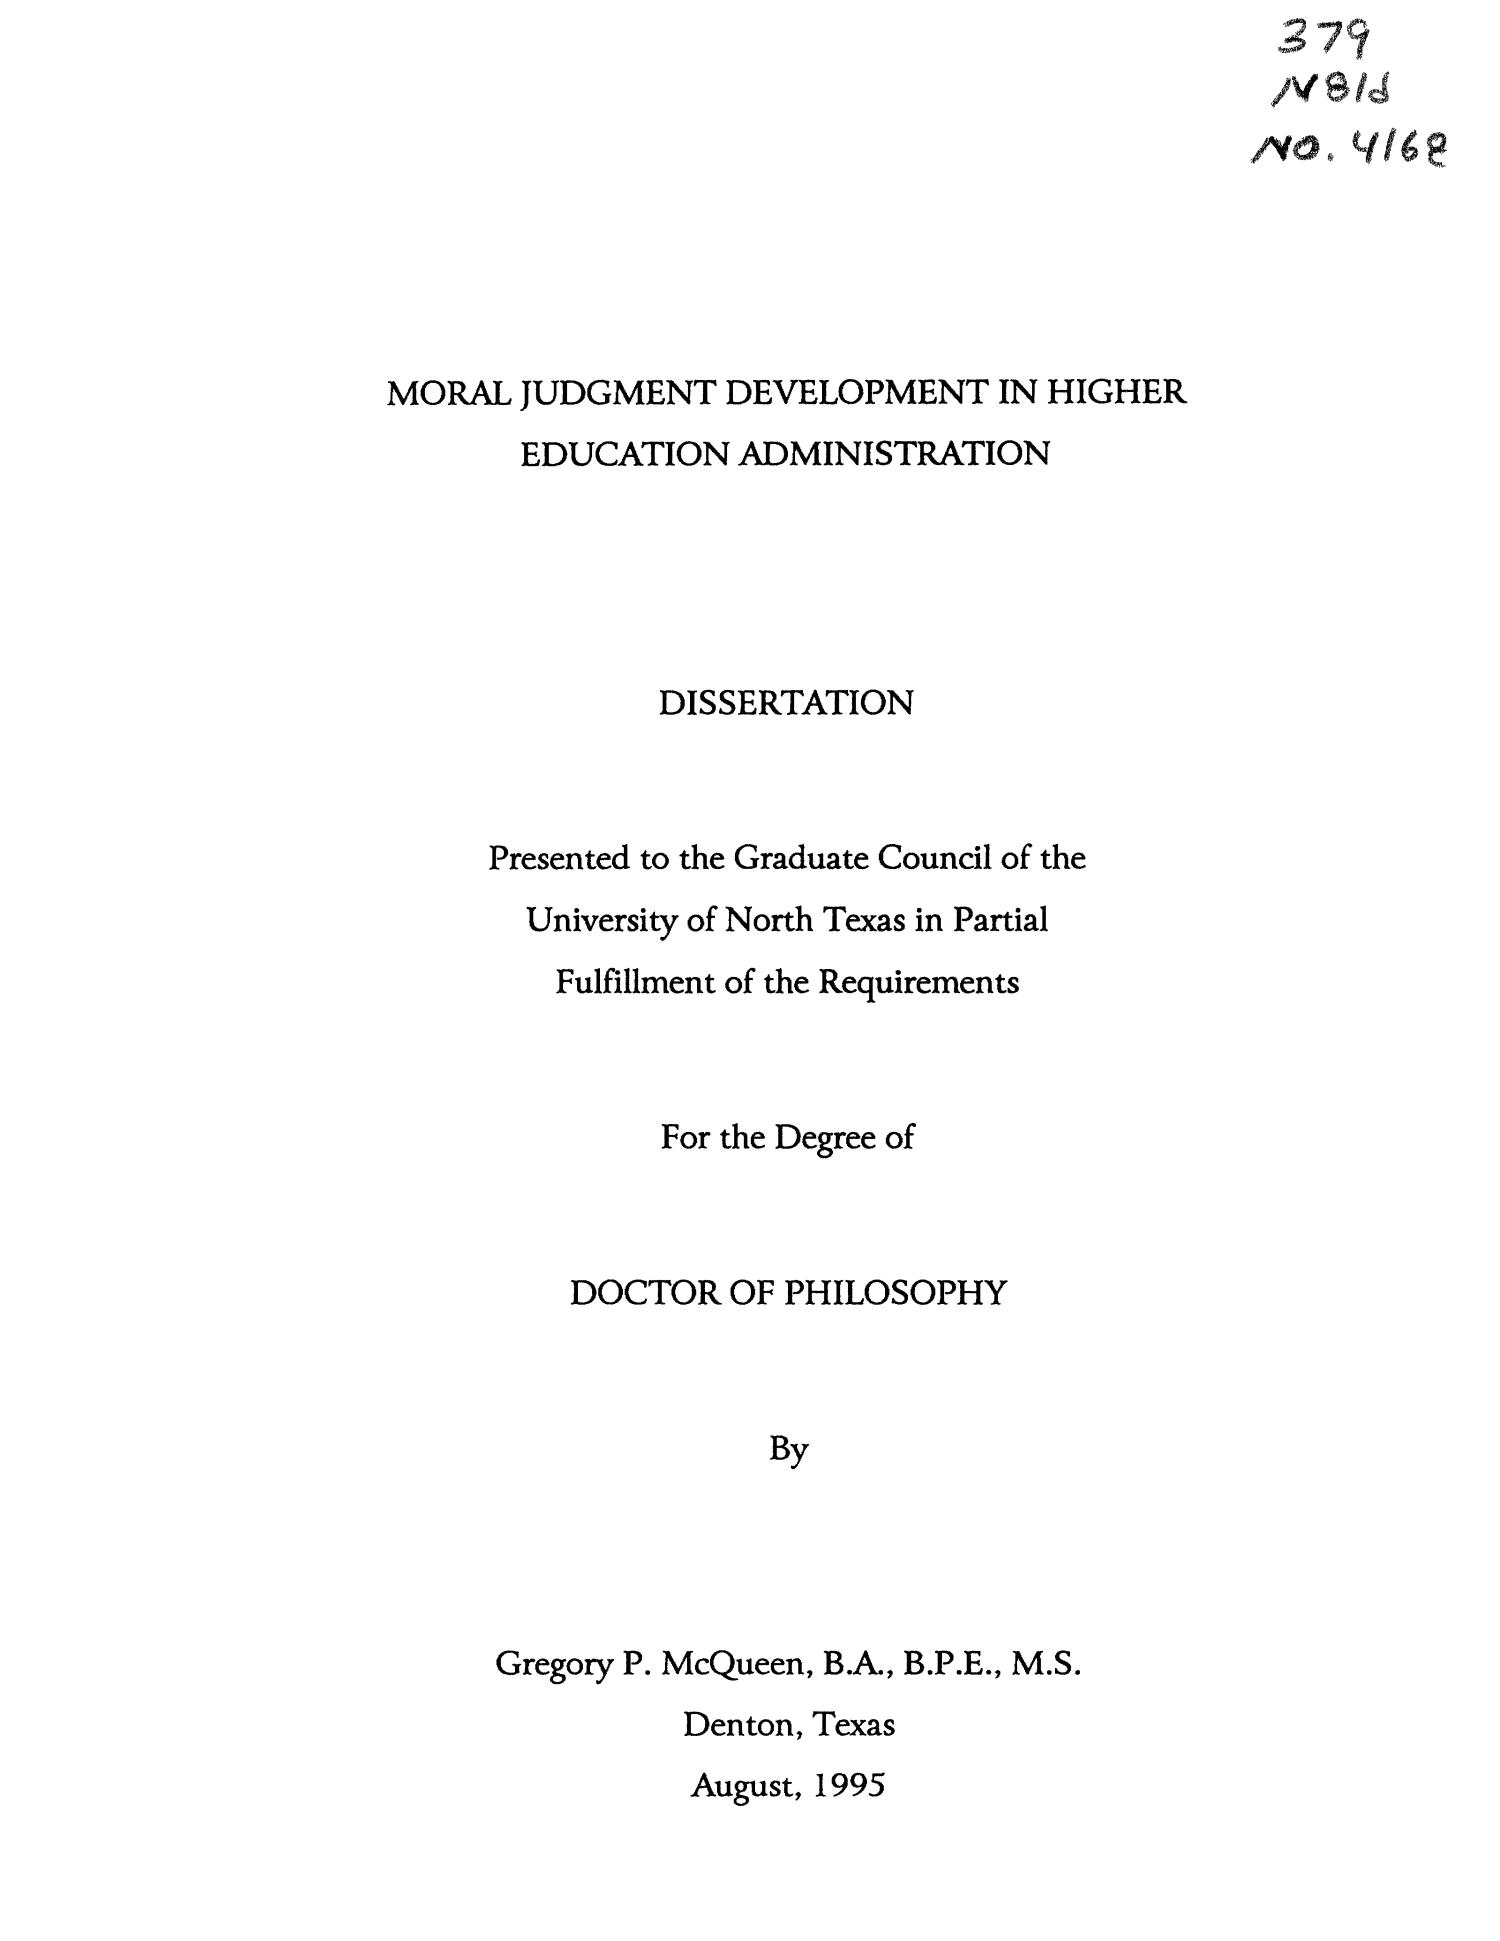 dissertation topics in education free download